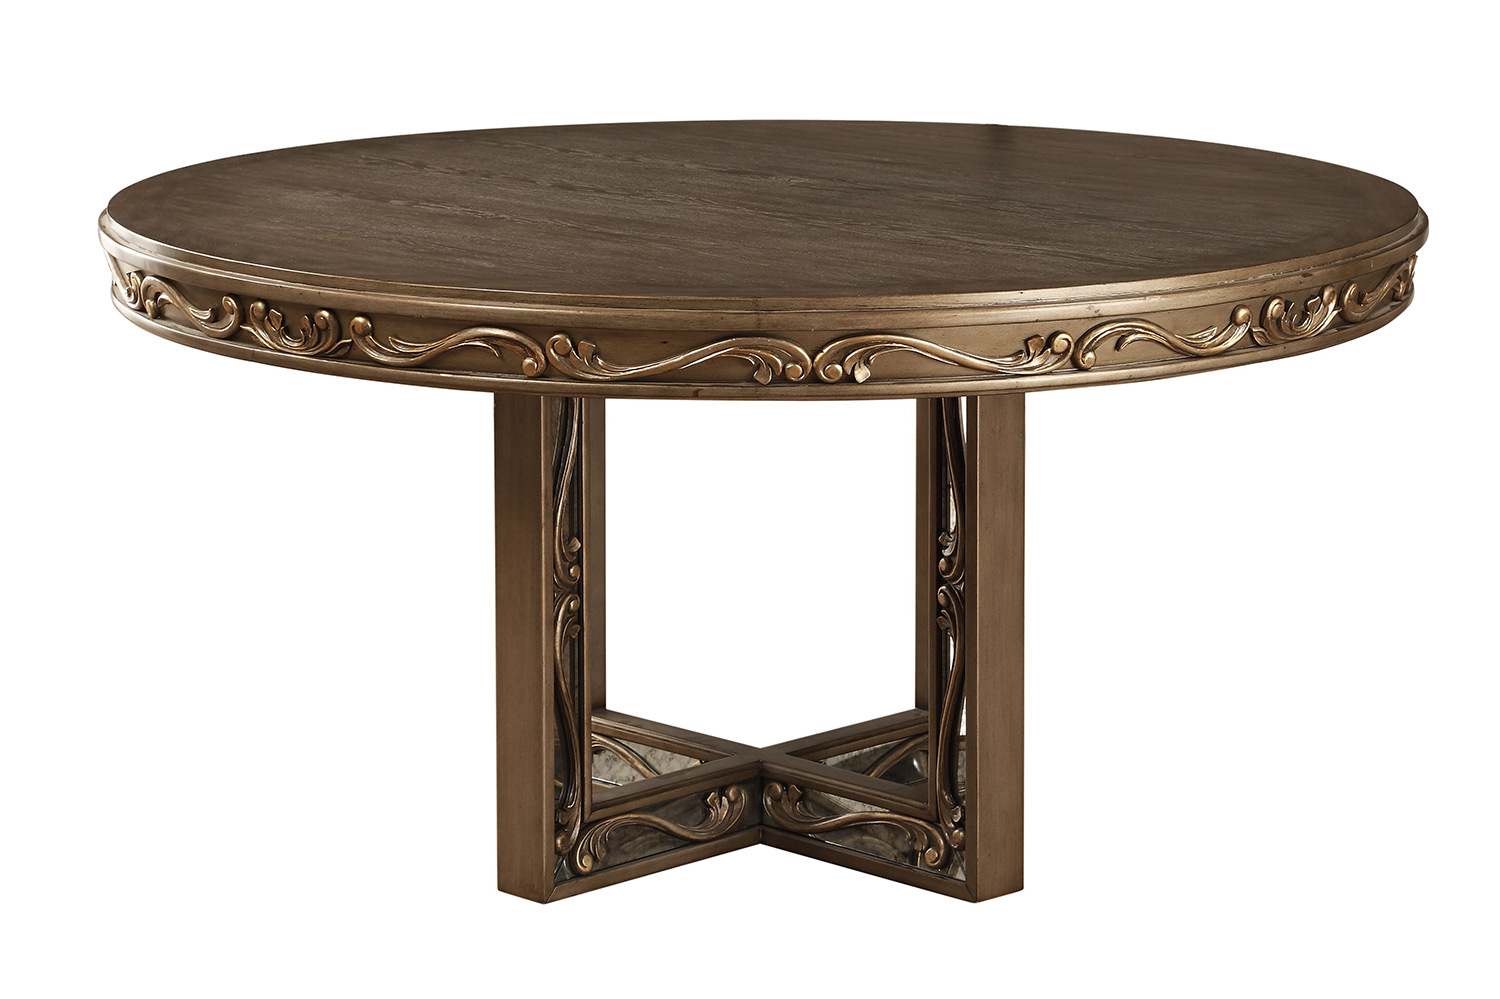 Acme Orianne Round Dining Table - Antique Gold